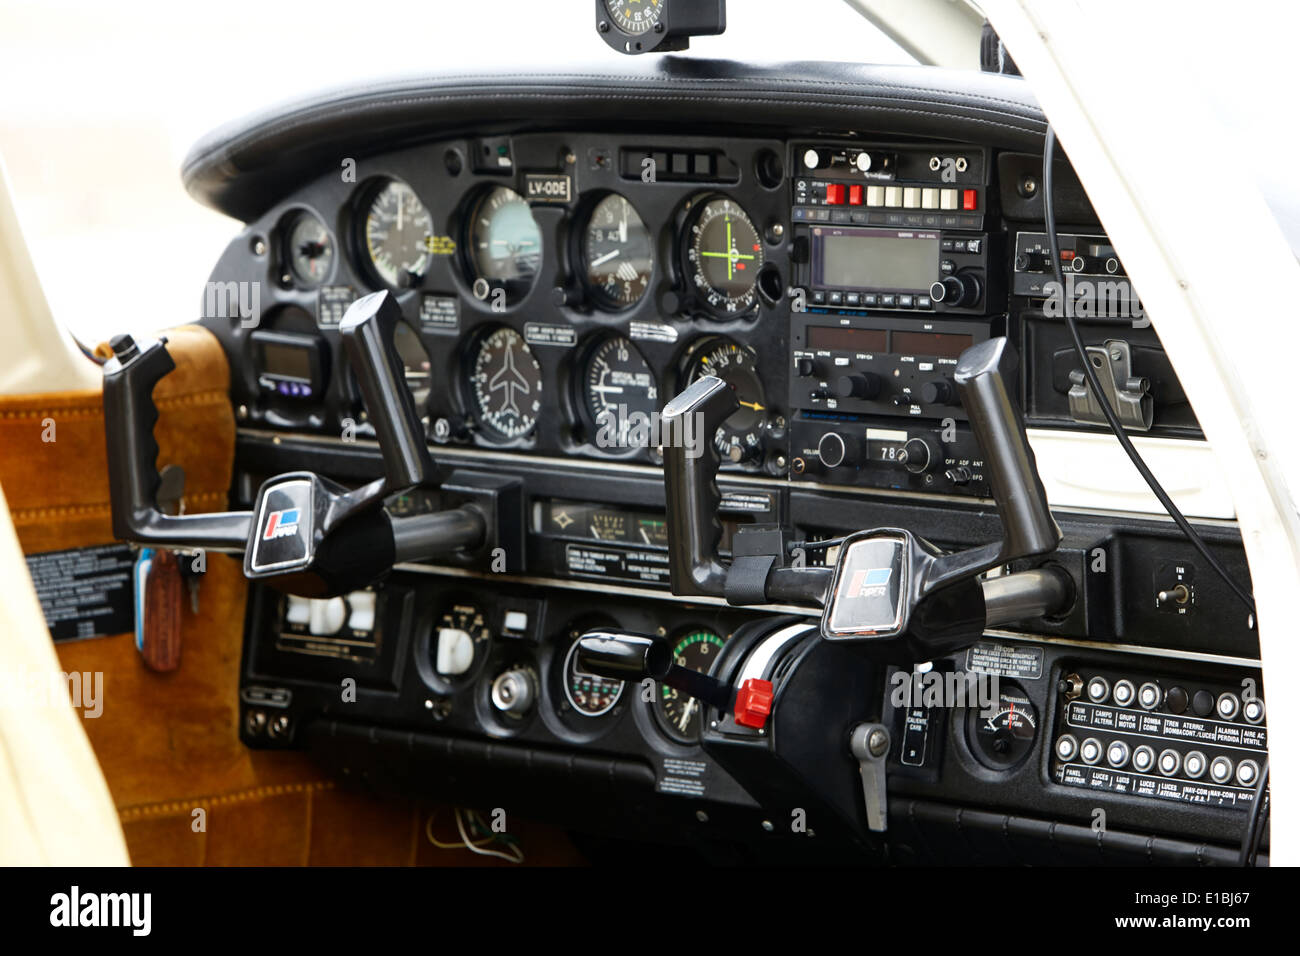 flight controls of a spanish language piper pa-28 archer light aircraft aeroclub Ushuaia Argentina - Stock Image